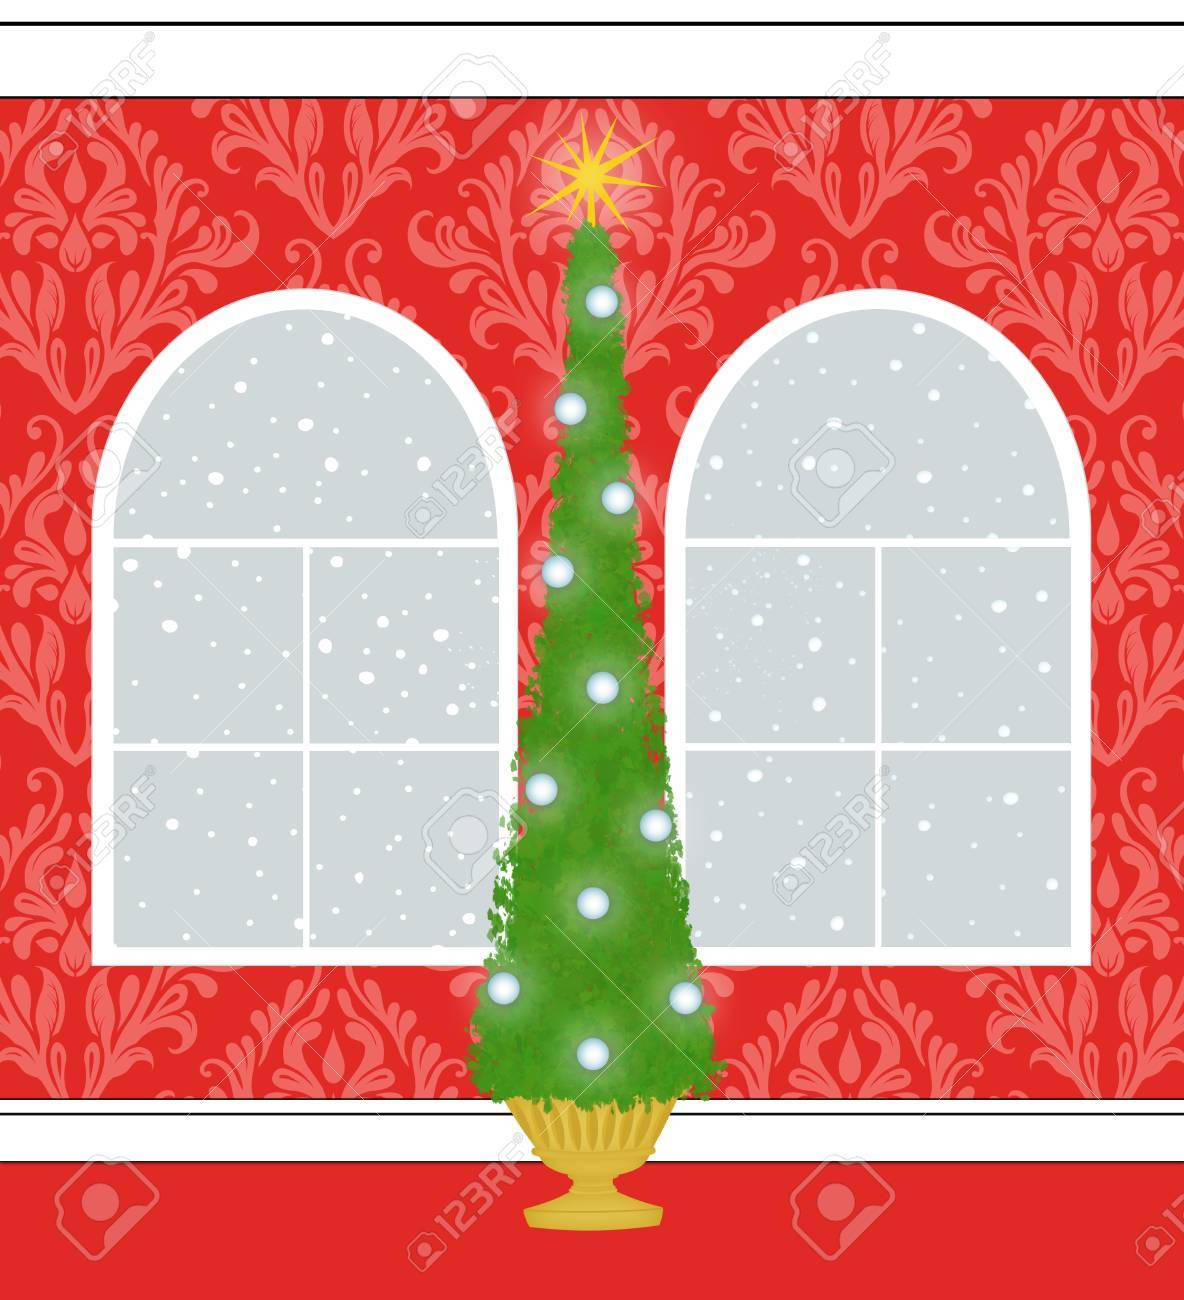 Christmas Tree In A Room With Red Damask Wallpaper And Palladian 1184x1300